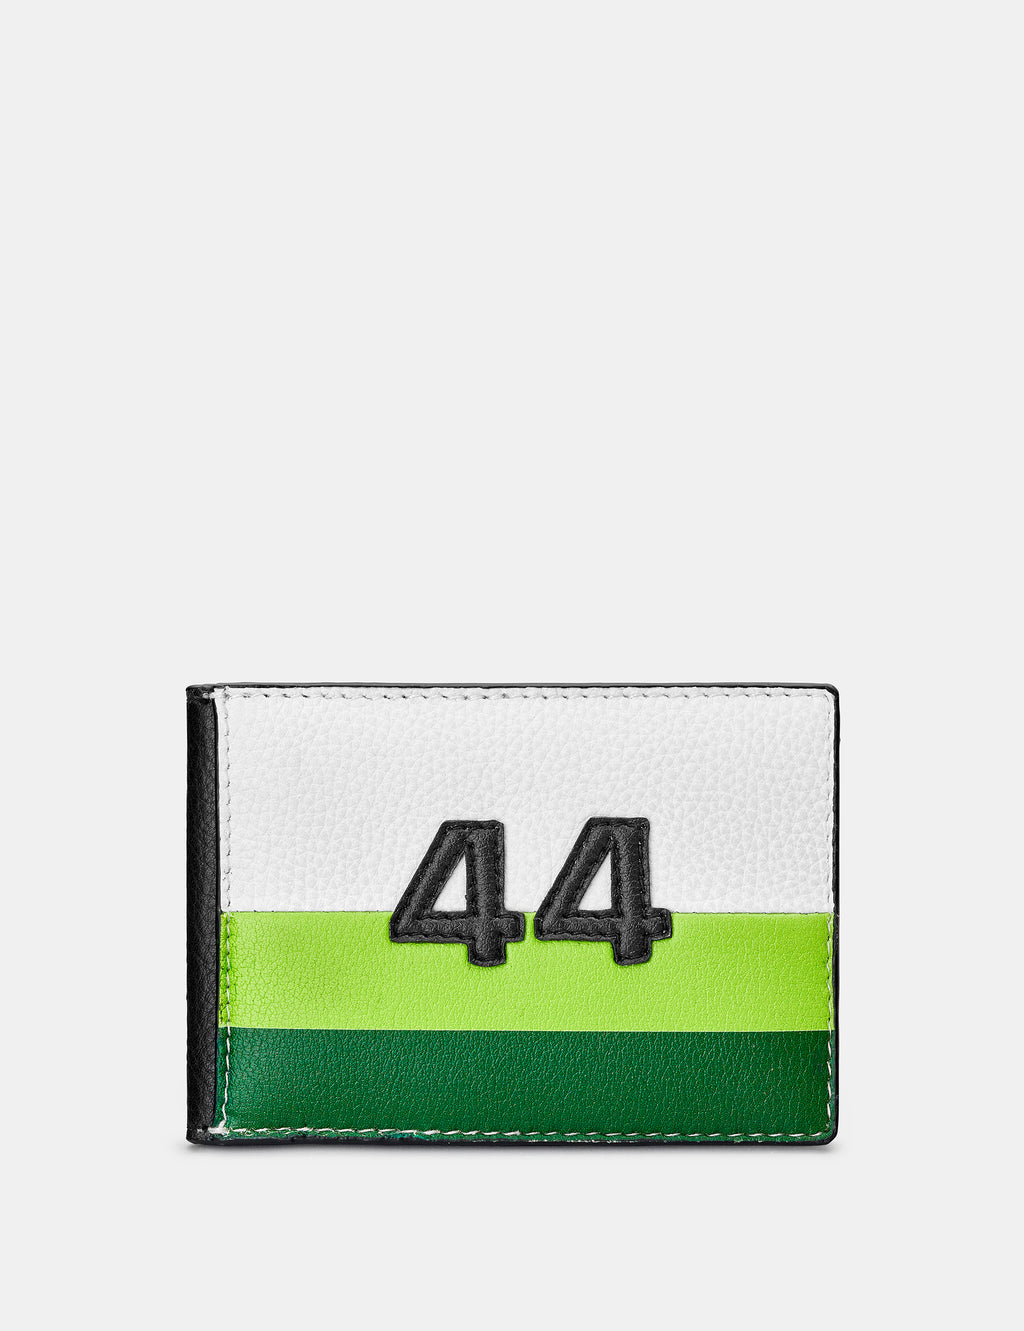 Car Livery No. 44 Leather Travel Pass Holder